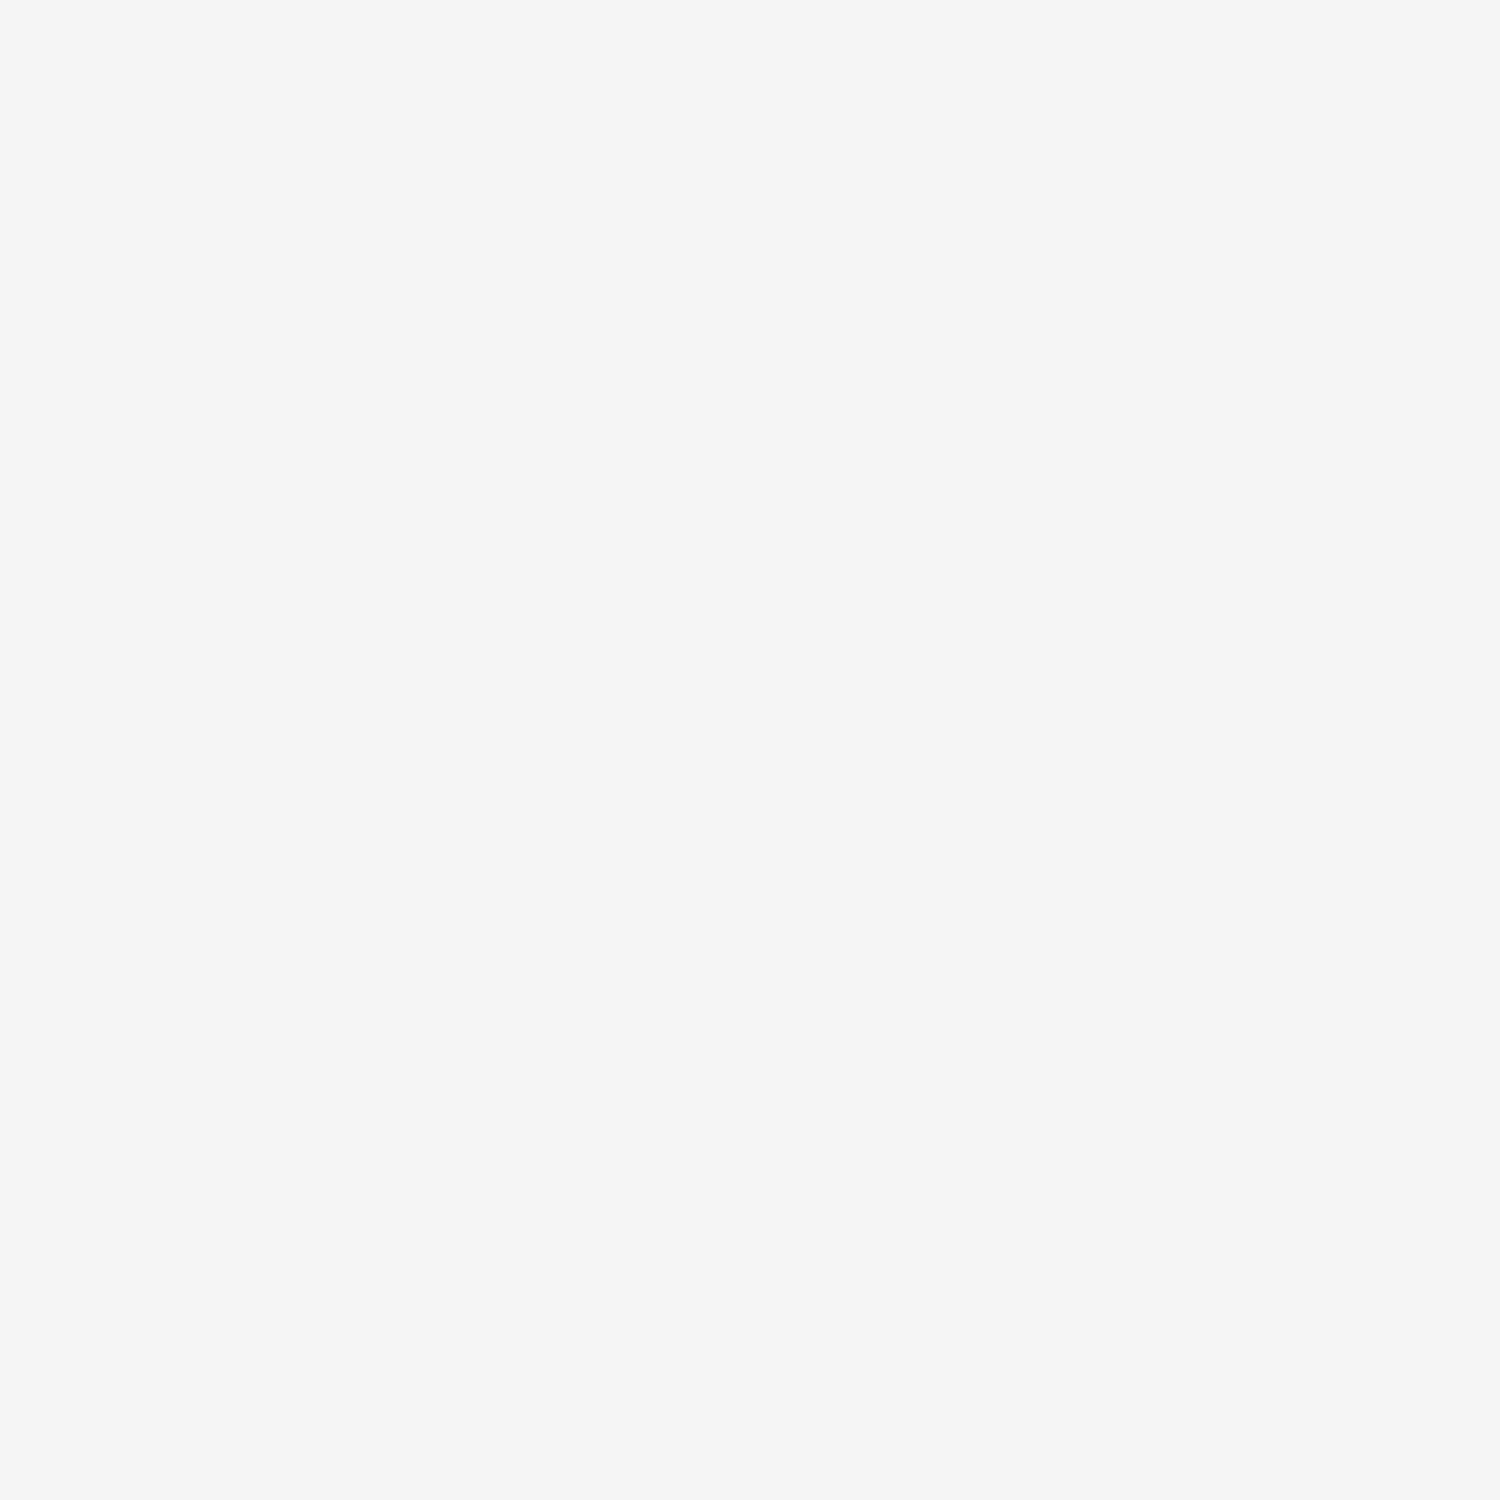 A padded or quilted gilet are ideal for active kids that enjoy being outdoors all year round. A padded gilet provides a vital extra layer for warmth without restricting movement.